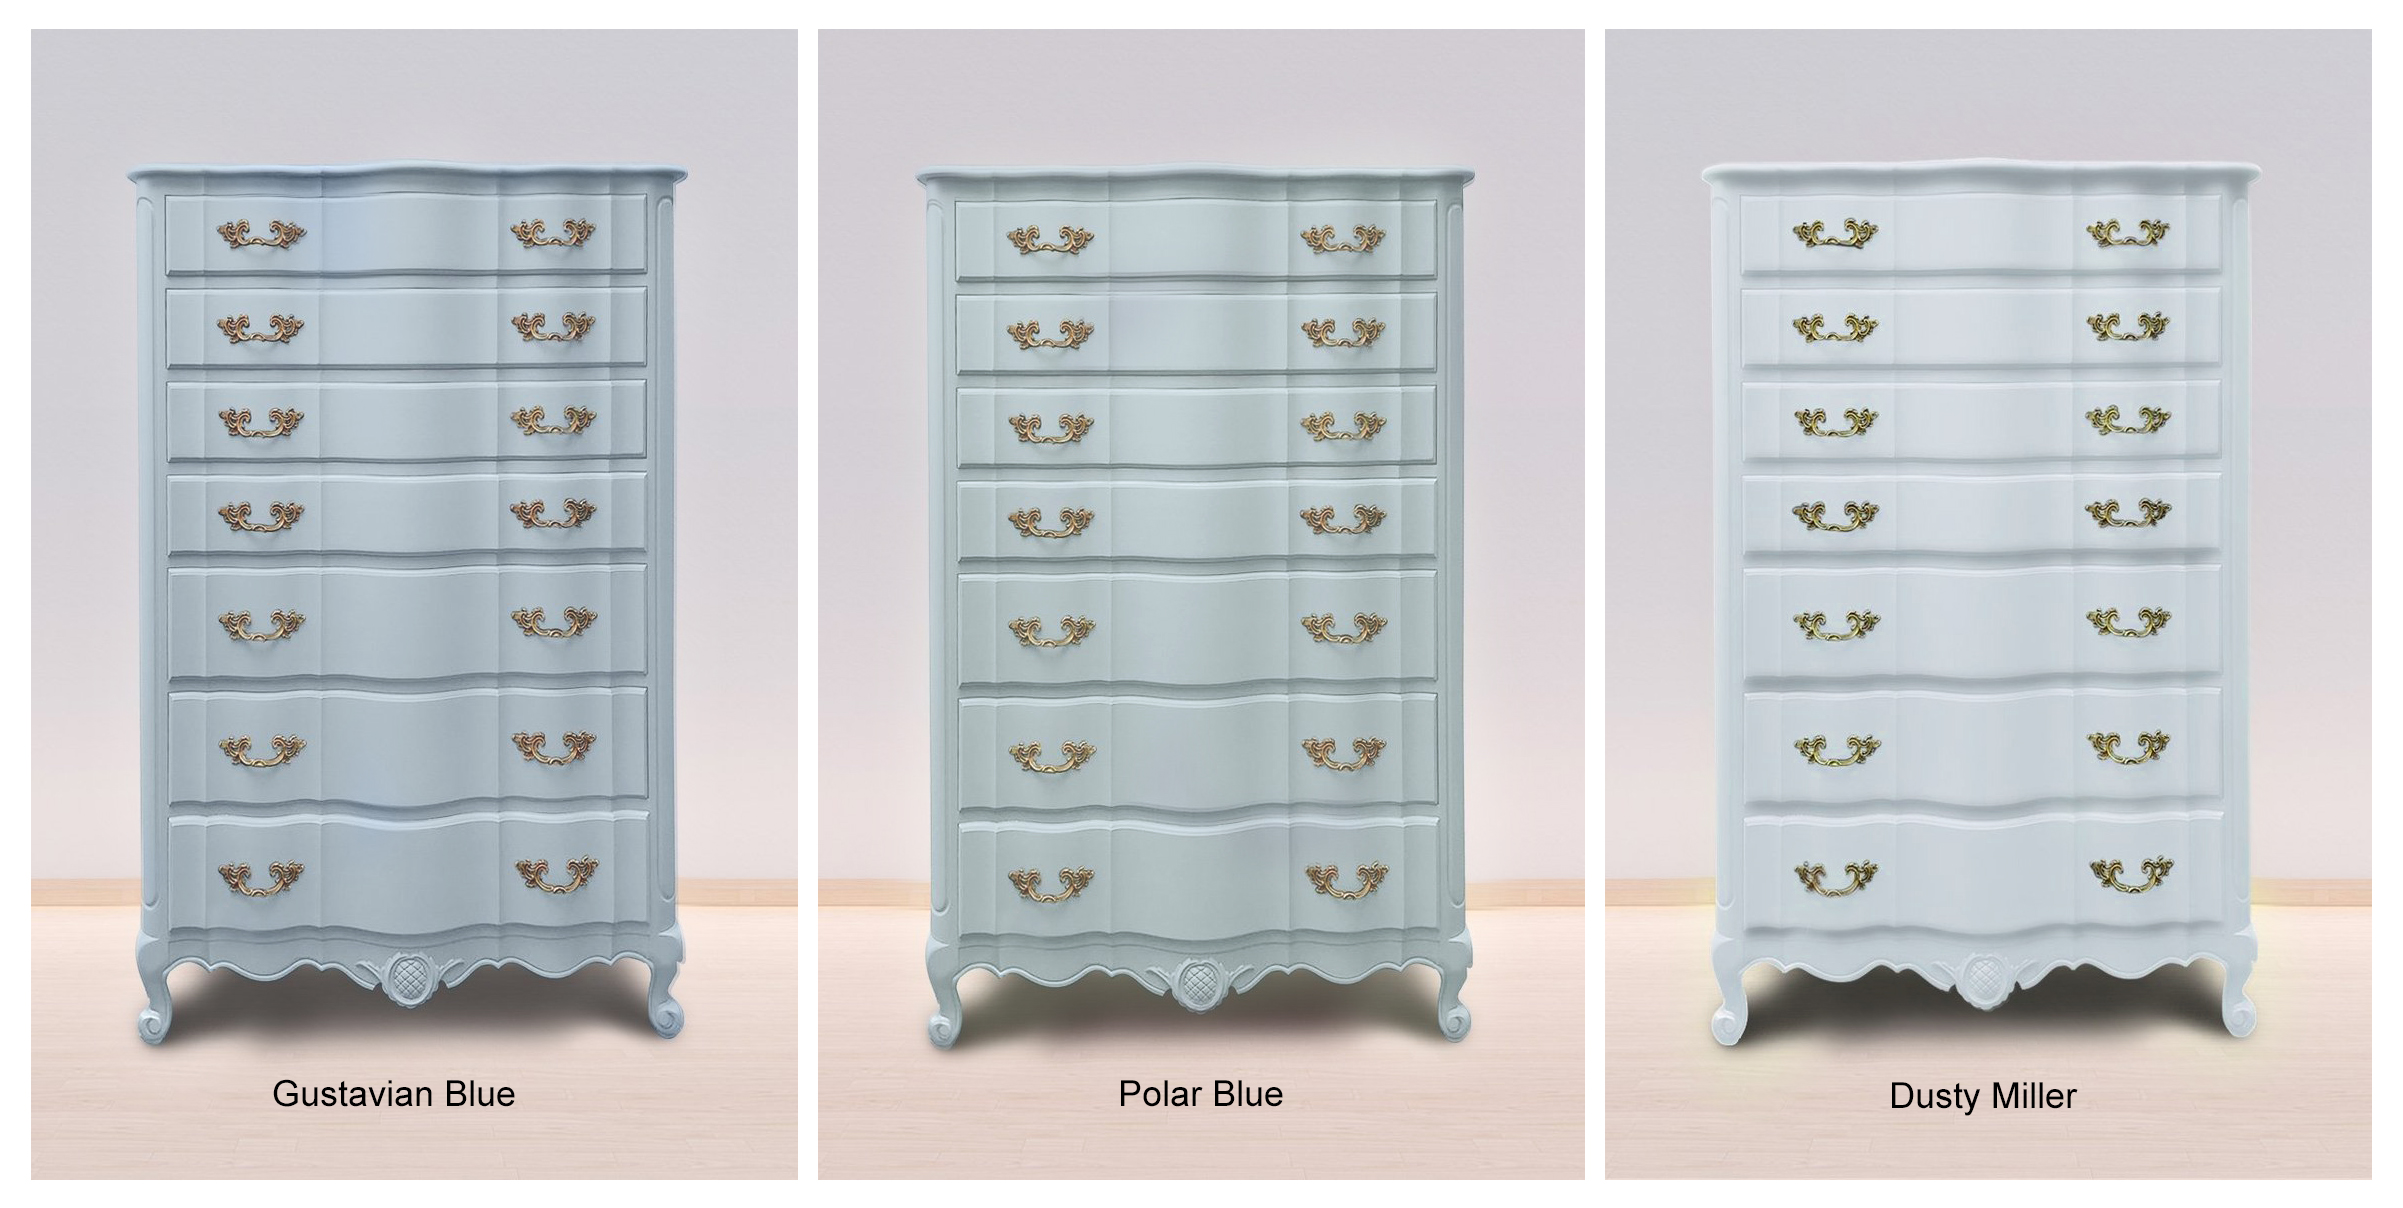 Gustavian Blue, Polar Blue & Dusty Miller